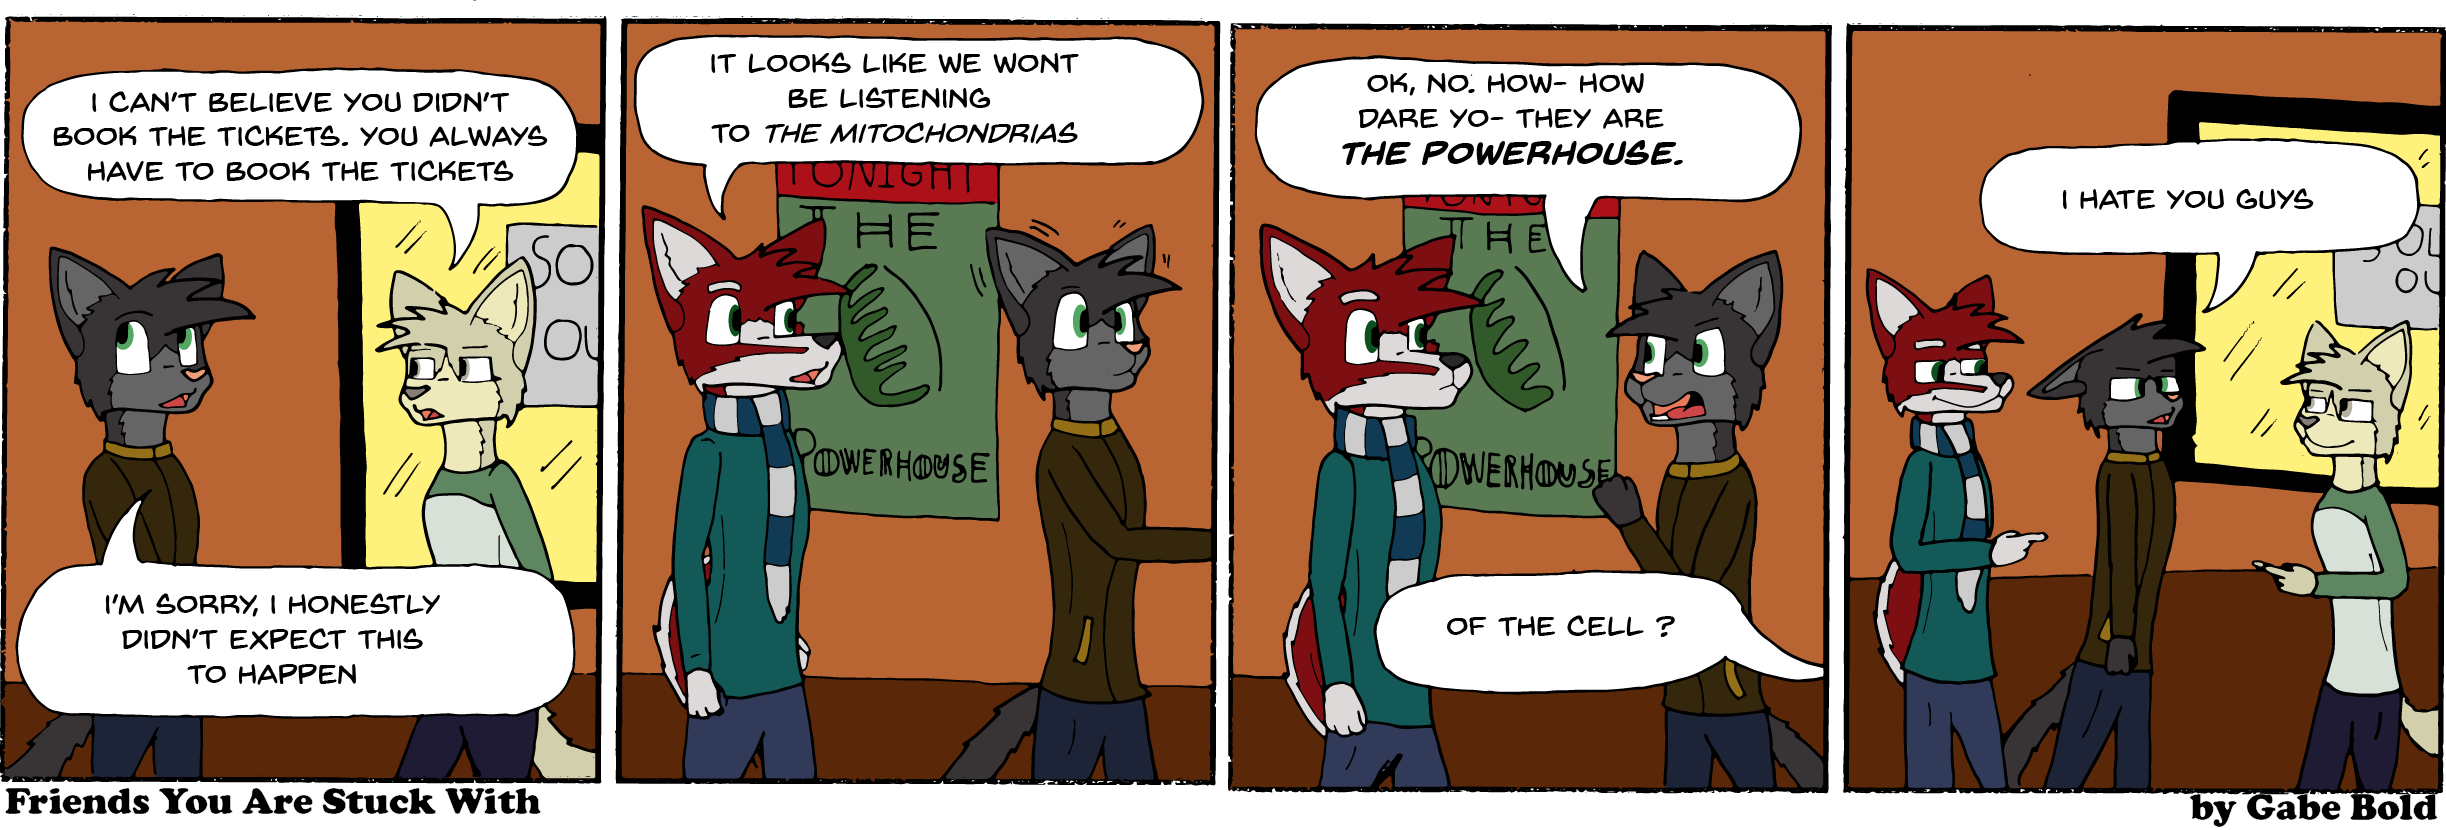 Get it ? Because the mitochondria is the powerhouse of the ce-... oh forget it